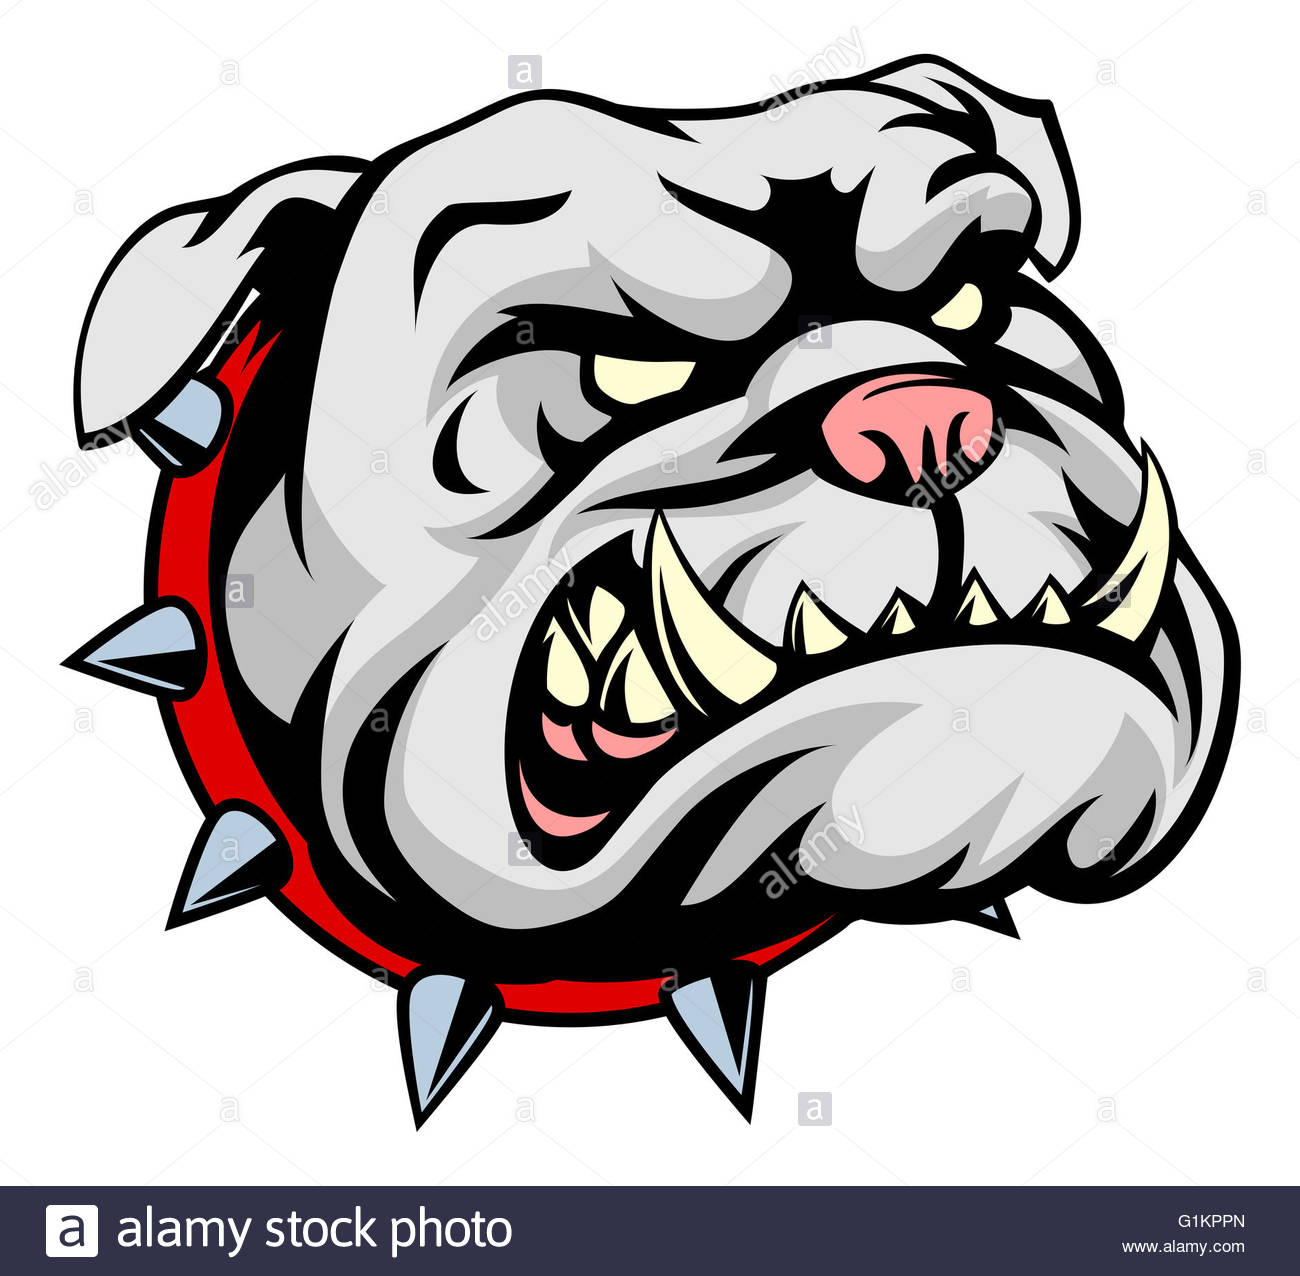 1300x1276 Bull Dog Clip Art Stock Photos Amp Bull Dog Clip Art Stock Images